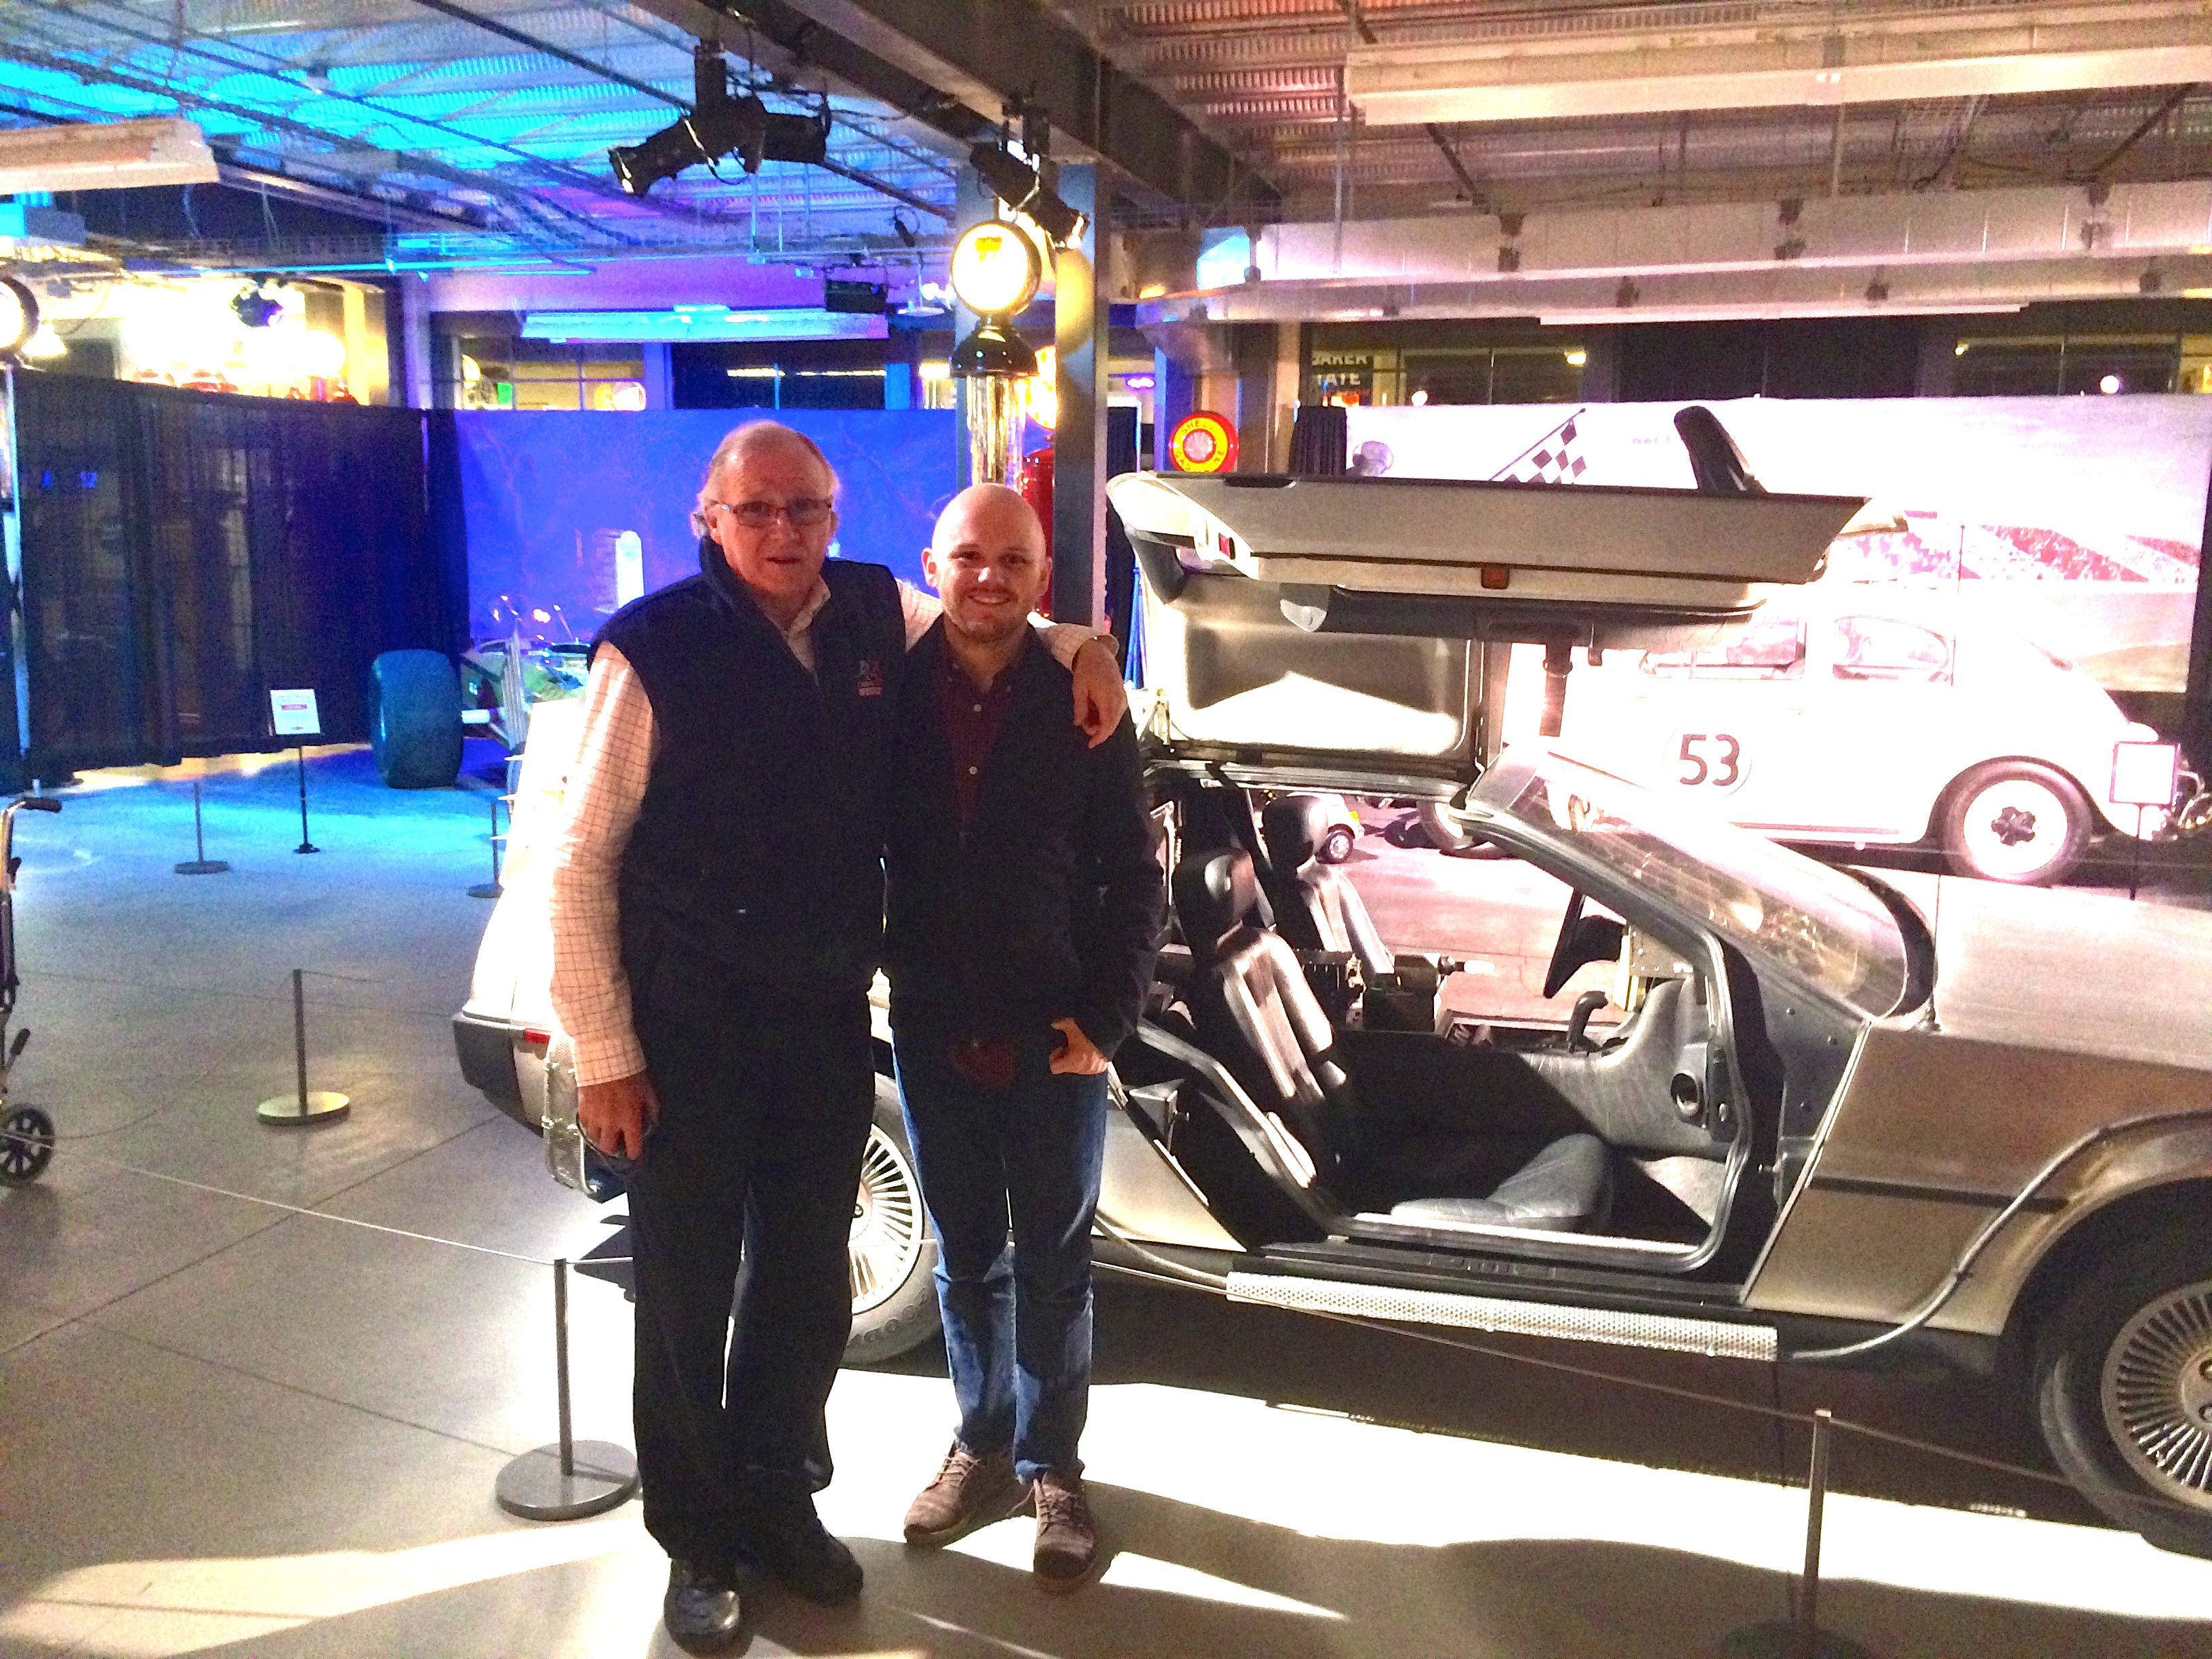 Travel: Checking out the stars' cars with my dad!